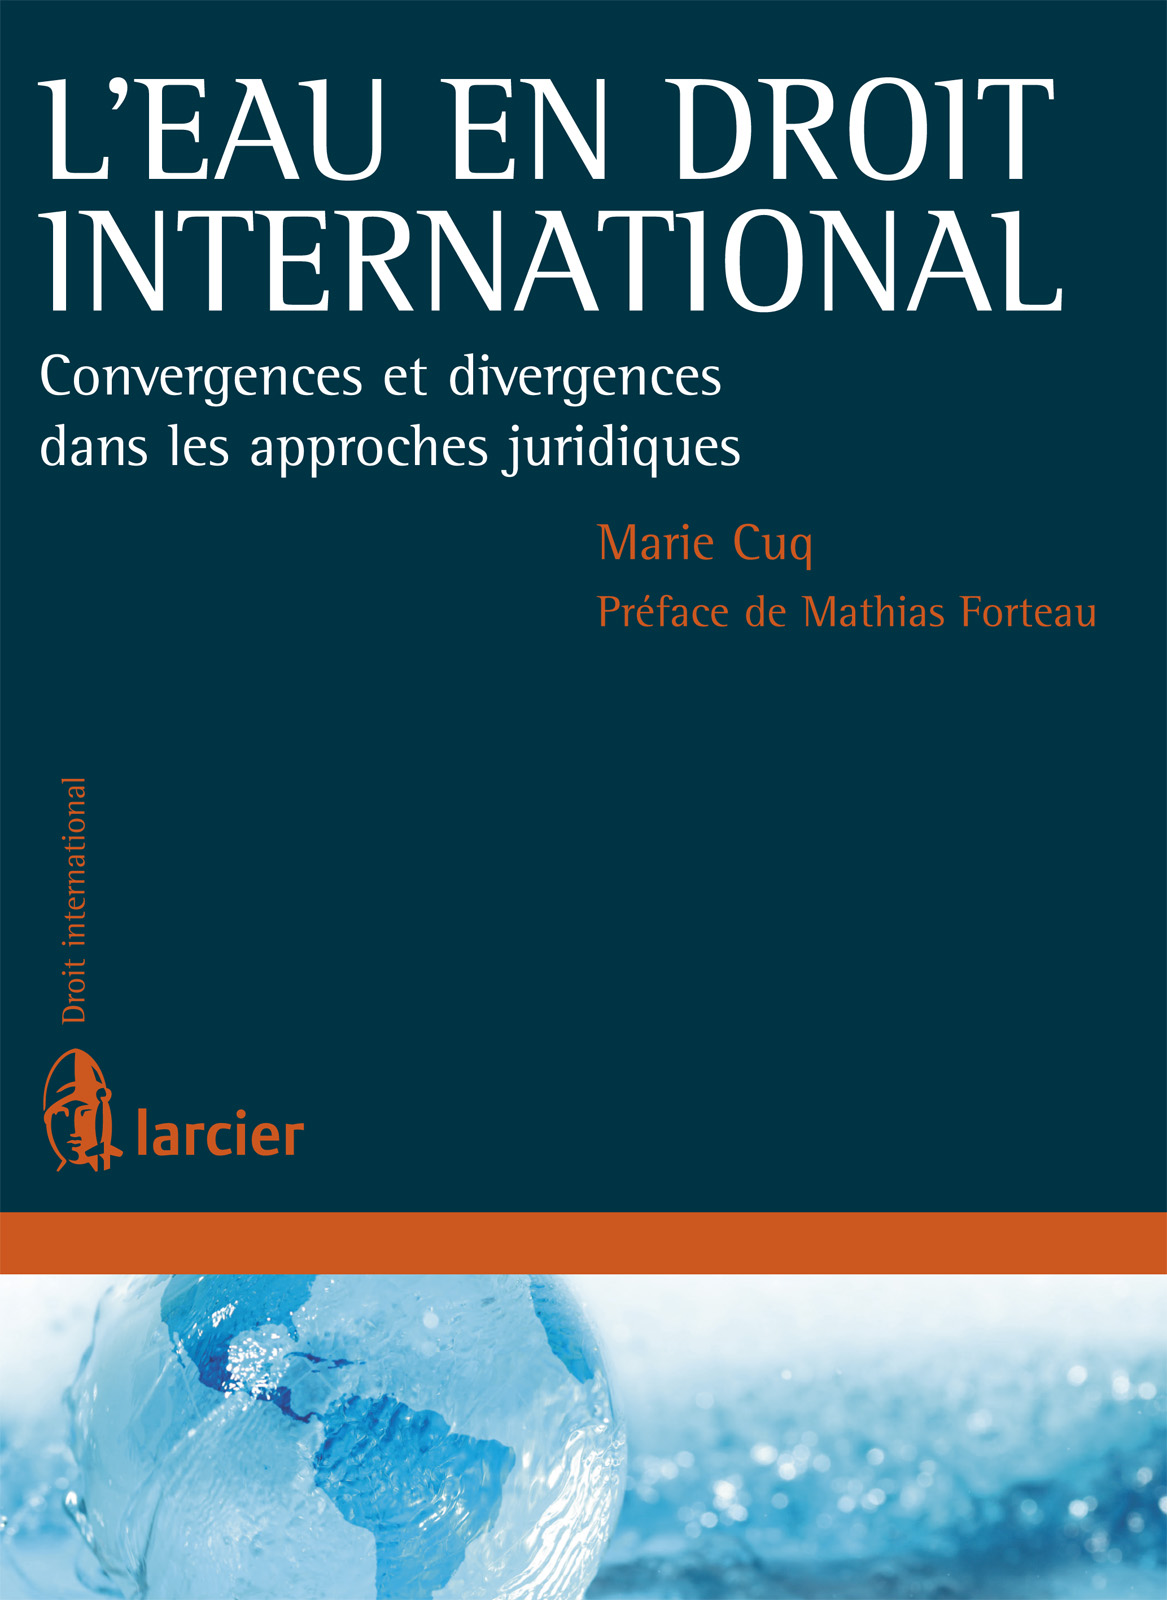 L'eau en droit international